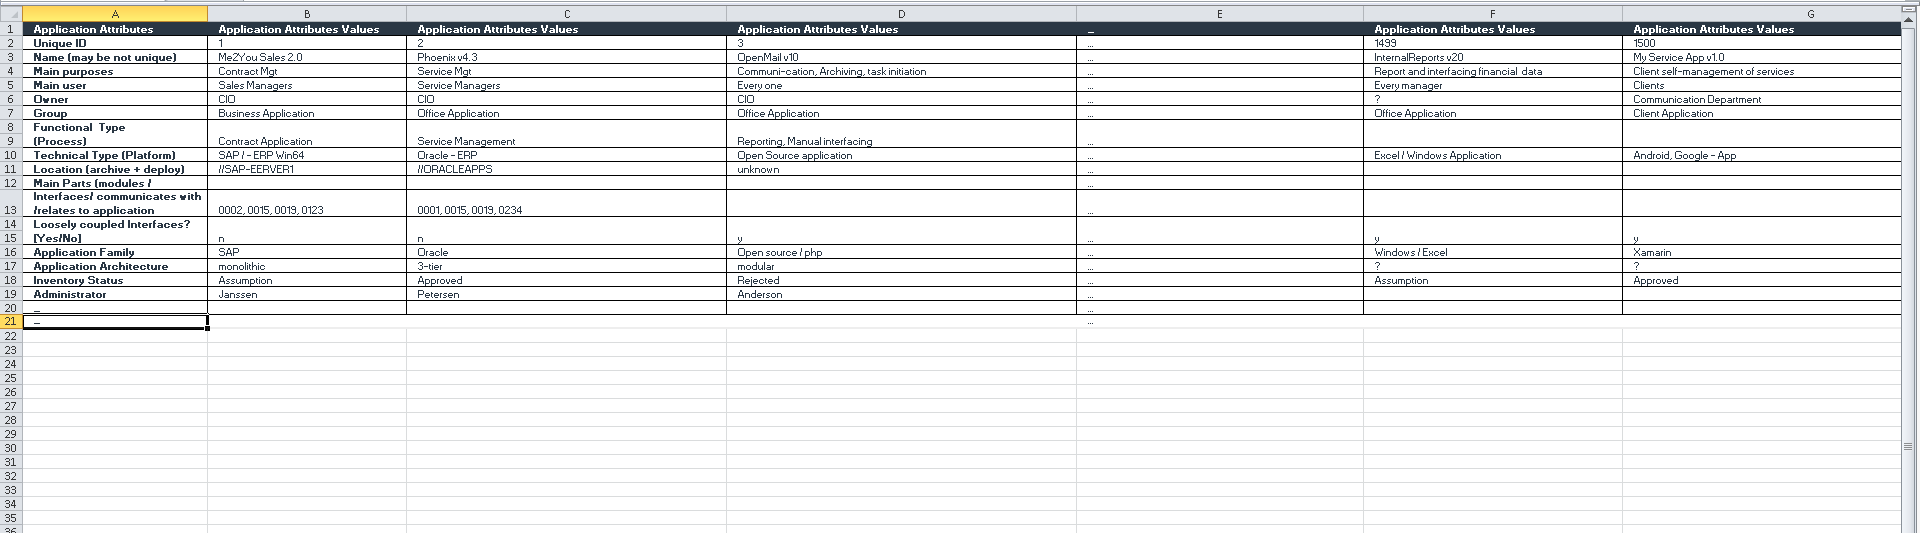 application rationalization excel sheet